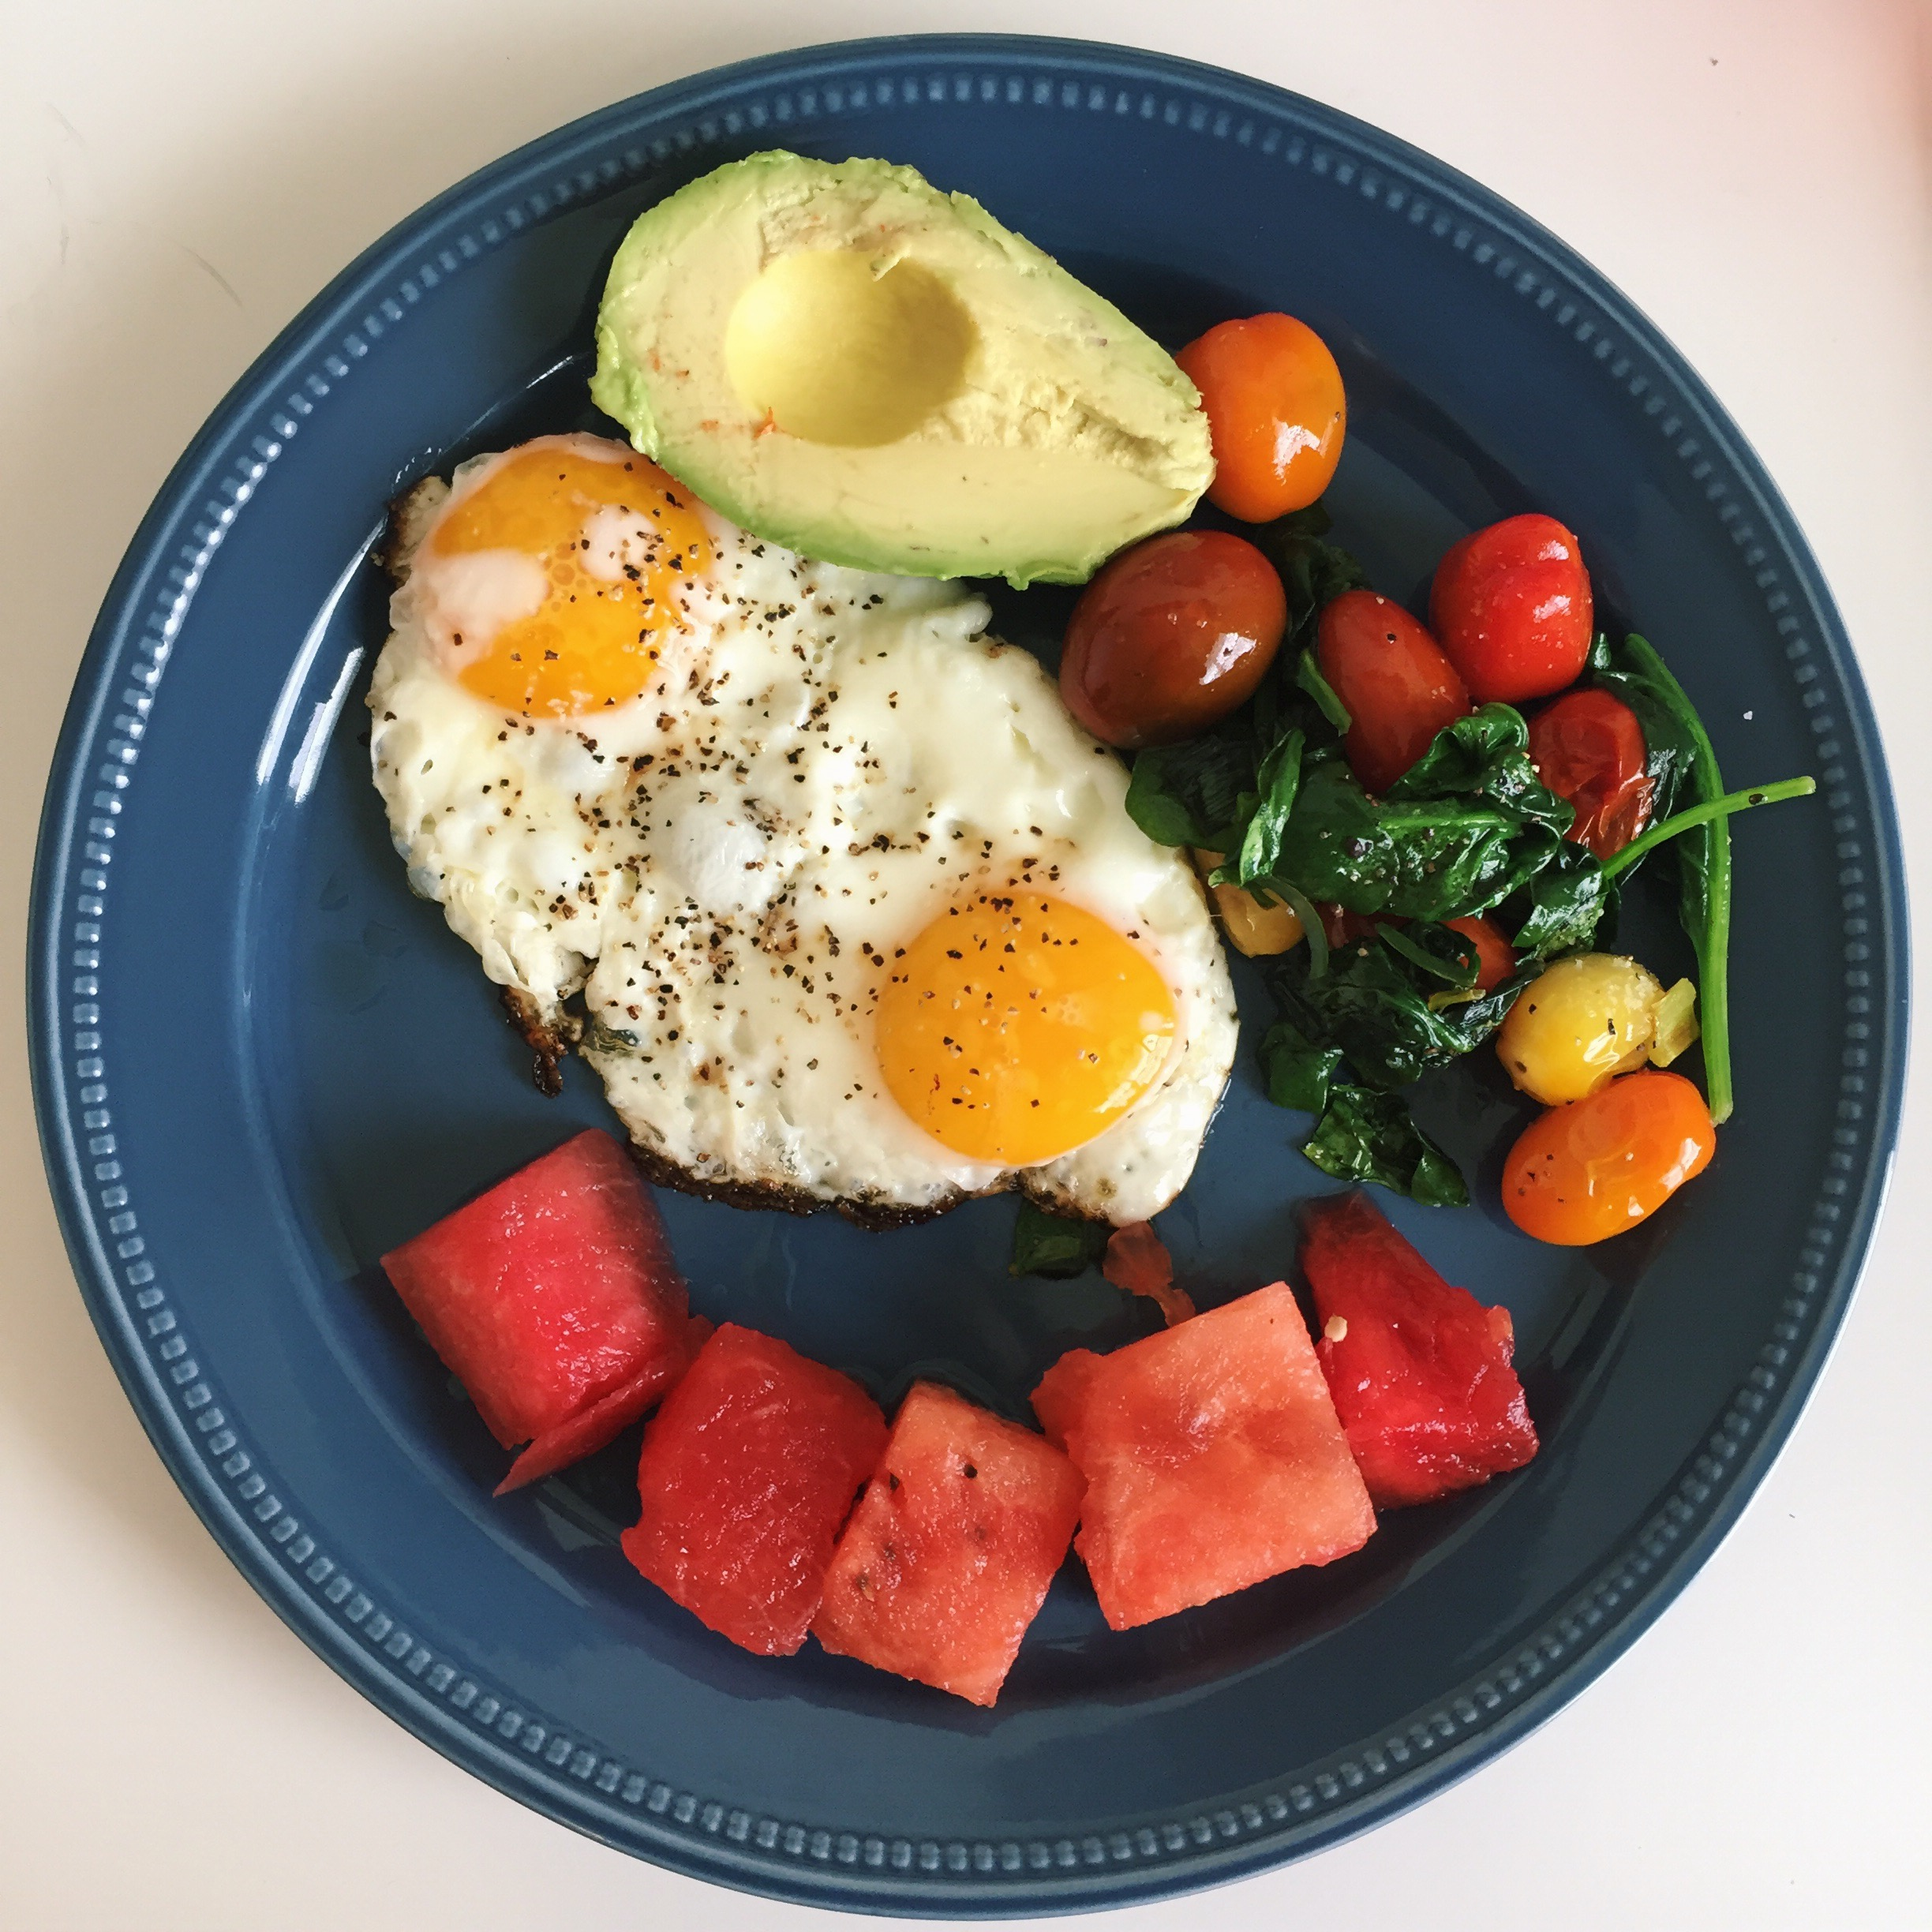 Eggs, because eggs - The most basic of all meals.-2 eggs fried in ghee in the cast iron skillet-1/2 an avocado-cherry tomatoes, spinach, and green onions sautéed in ghee-watermelonThis took me less than 10 minutes to throw together!